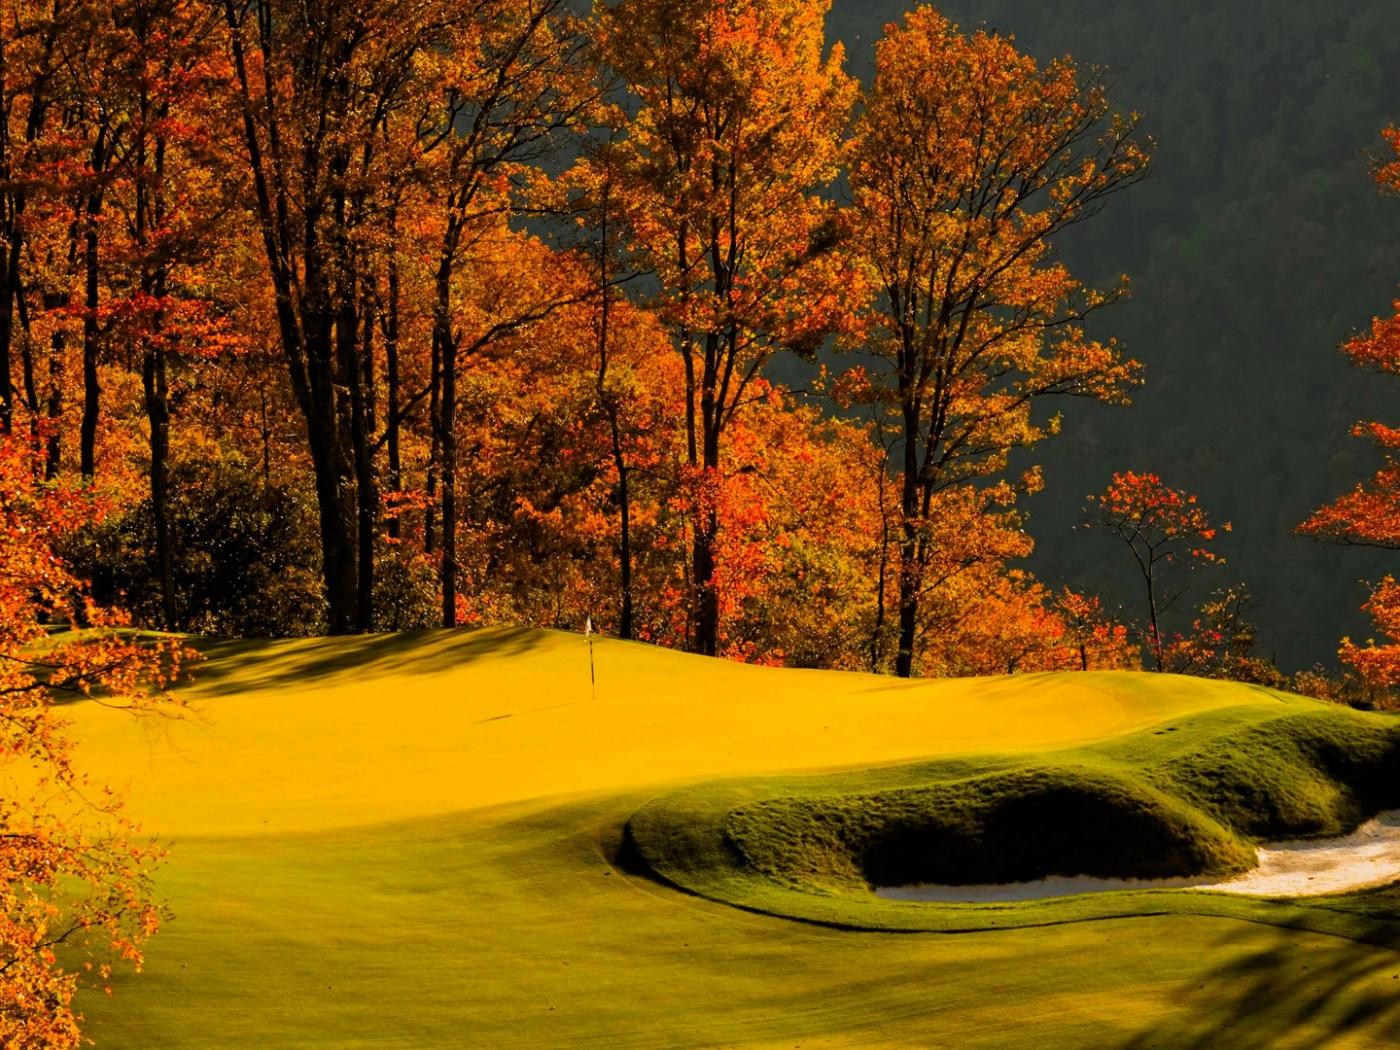 New England Fall Wallpaper Free Autumn Golf Course Wallpaper In 1920x1080 Hd Wallpapers